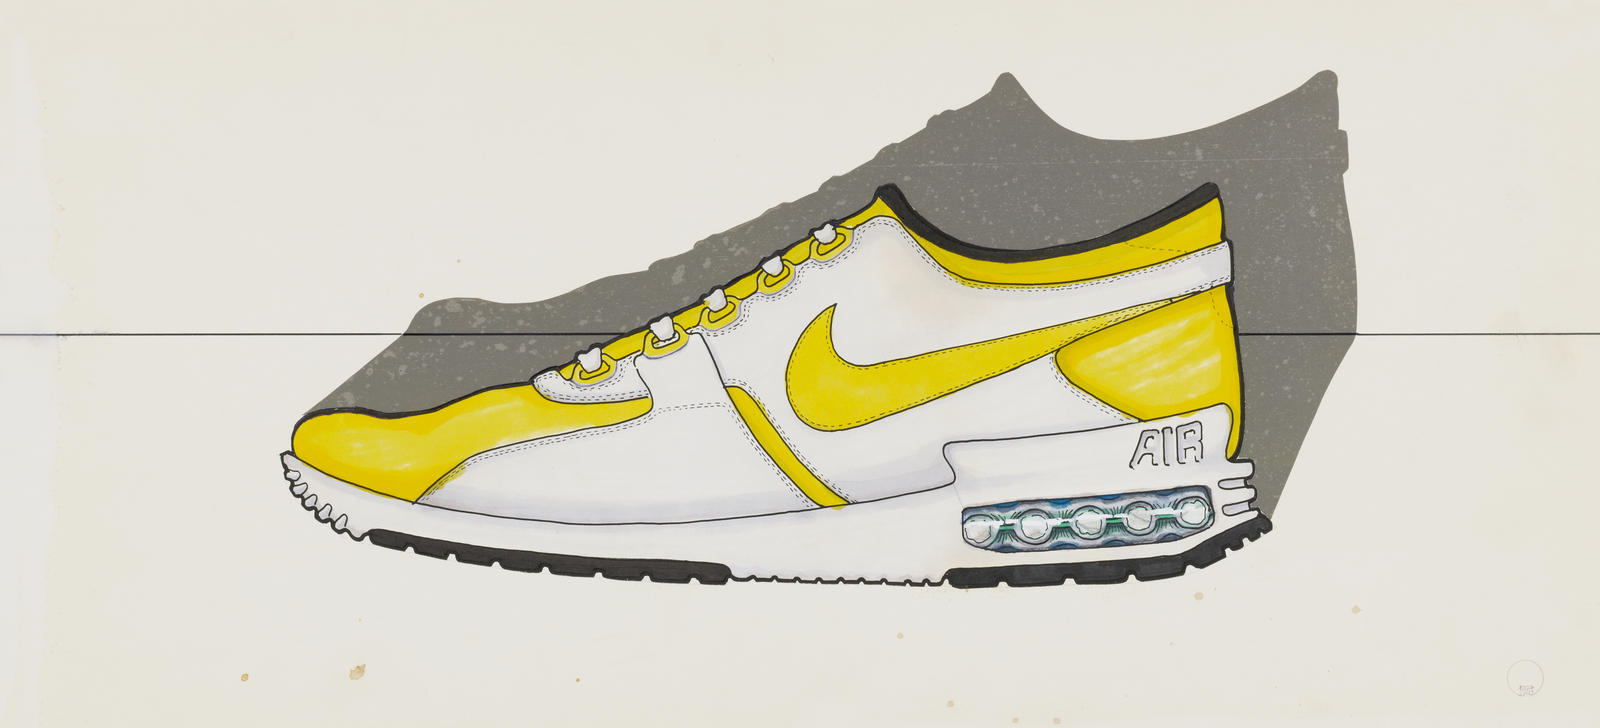 cd42e0b744cc4 INS2103 1. Tinker Hatfield s original sketch of the Air Max Zero